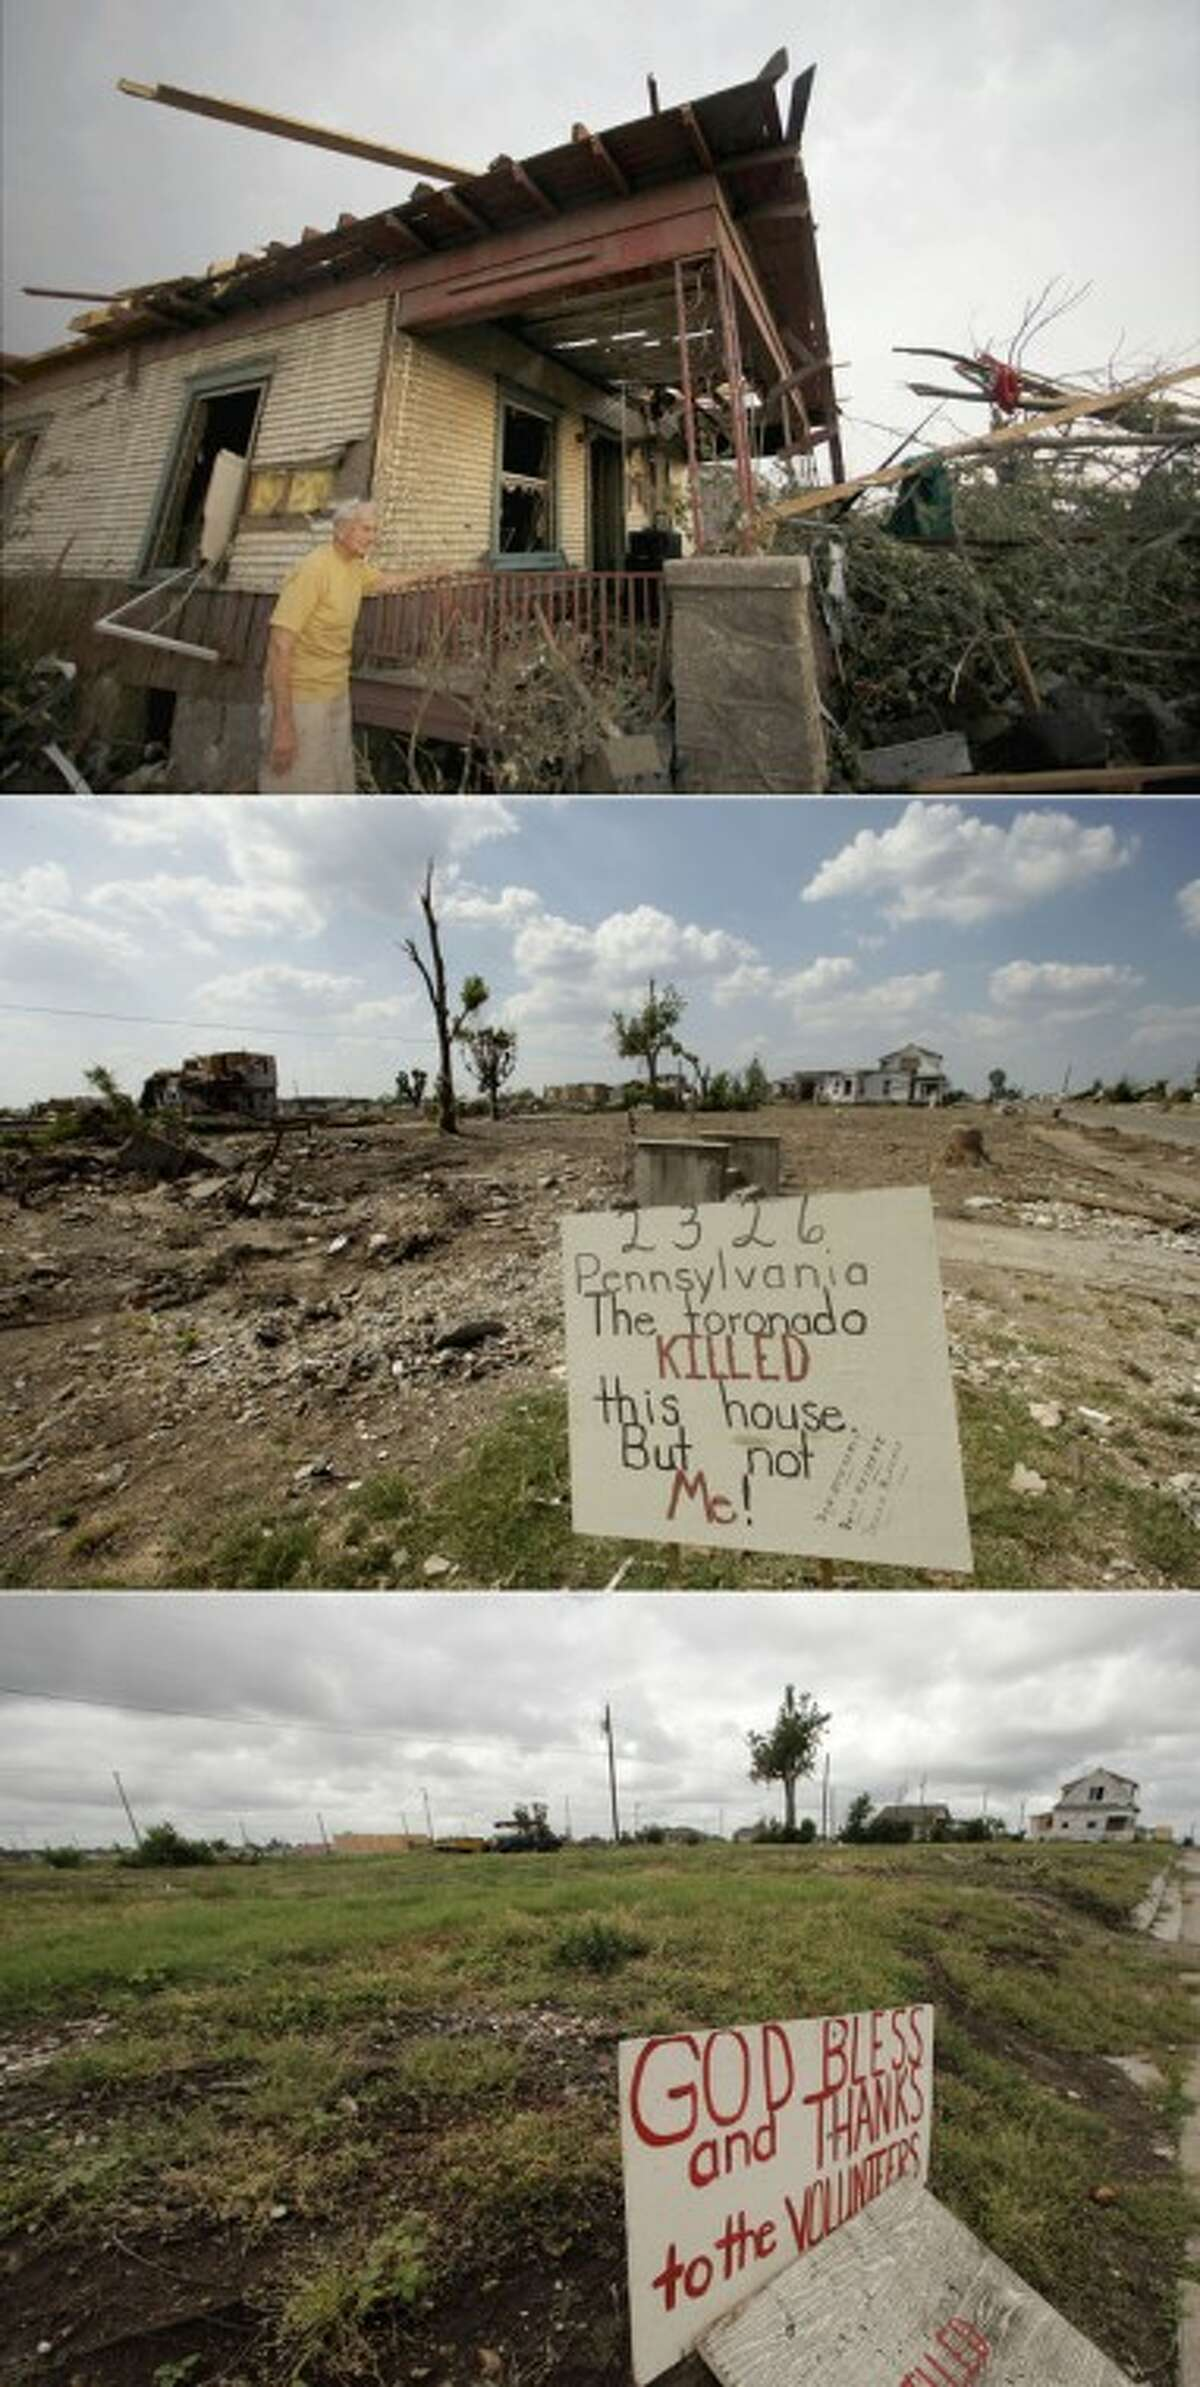 This three-photo combo shows a scene taken on May 23, 2011, top, July 21, 2011, center, and May 7, 2012, bottom, shows progress made in Joplin, Mo. in the year after an EF-5 tornado destroyed a large swath of the city and killed 161 people. In the top photo, Don Atteberry, 89, surveys damage at his home that was severely damaged by the tornado and is today cleared with just a sign as a reminder of the past residents. (AP Photo/Charlie Riedel)